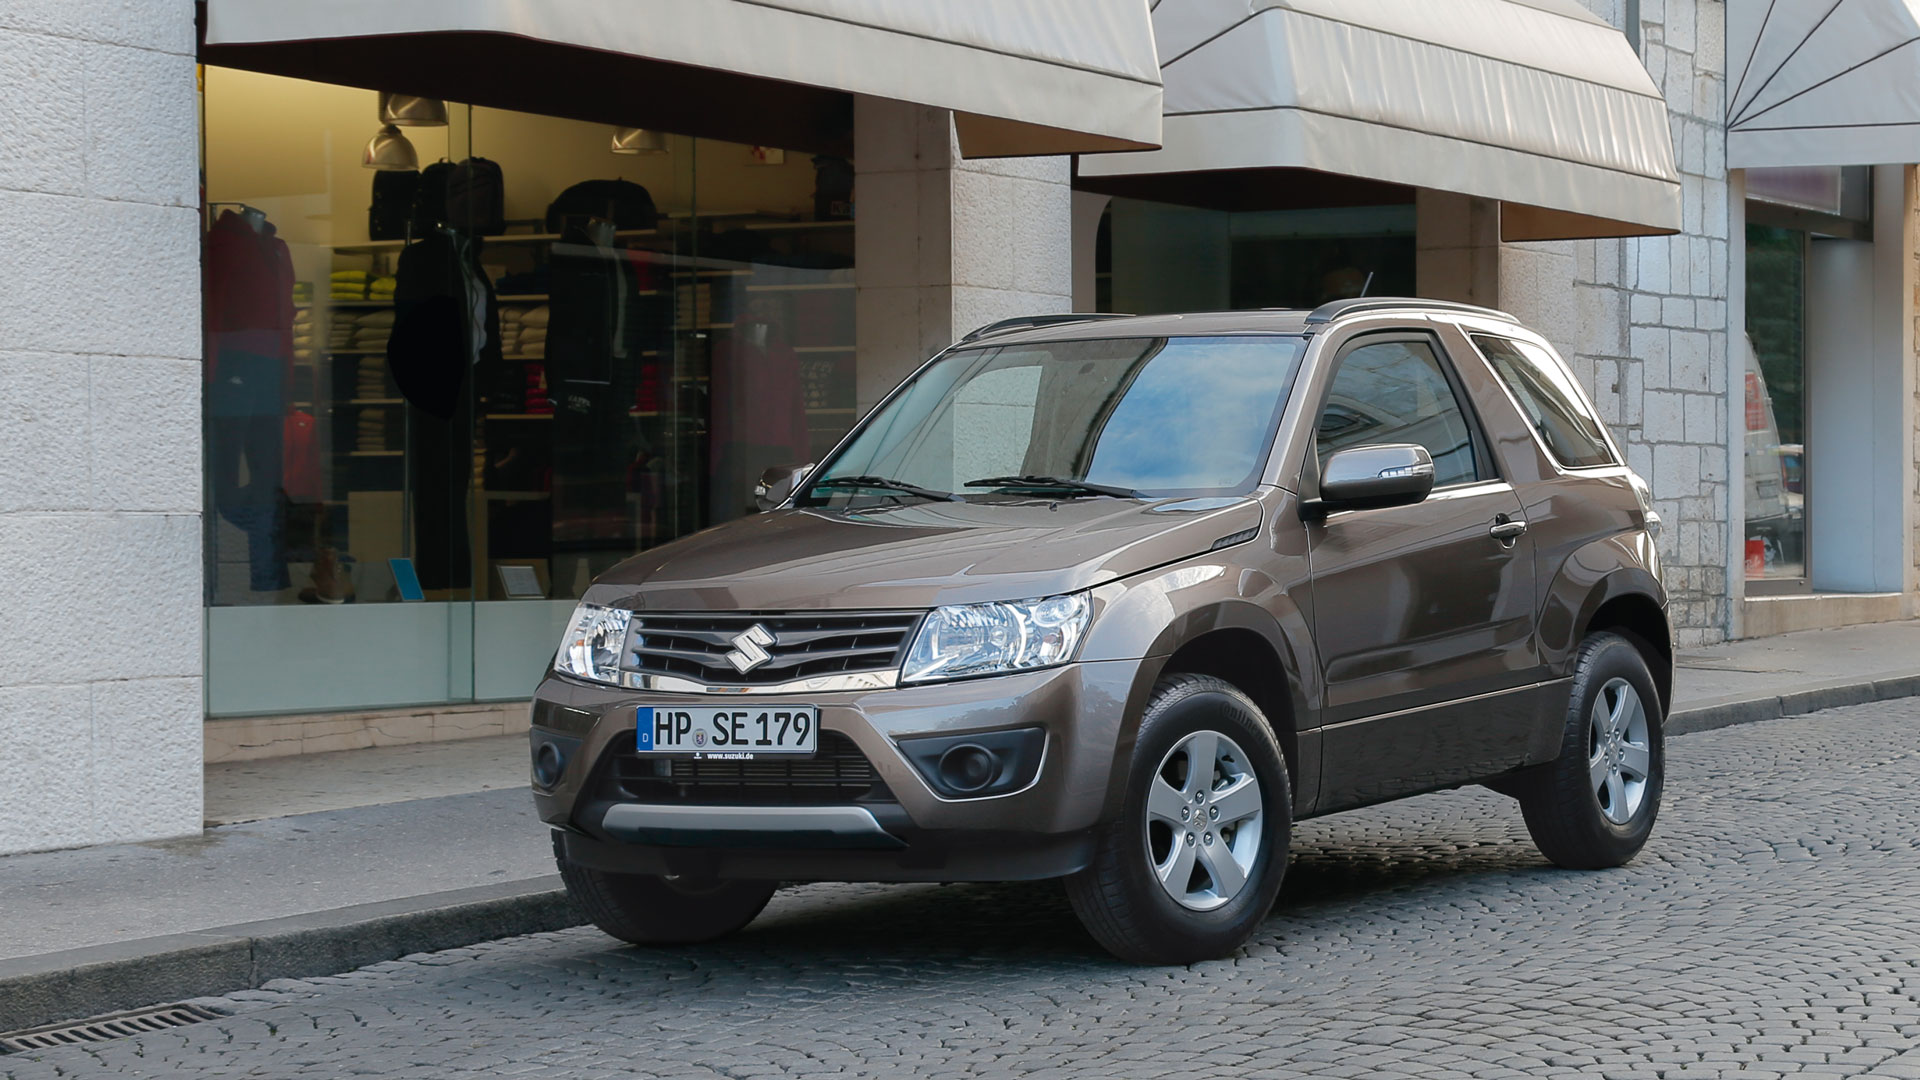 2014 suzuki grand vitara ii pictures information and specs auto. Black Bedroom Furniture Sets. Home Design Ideas